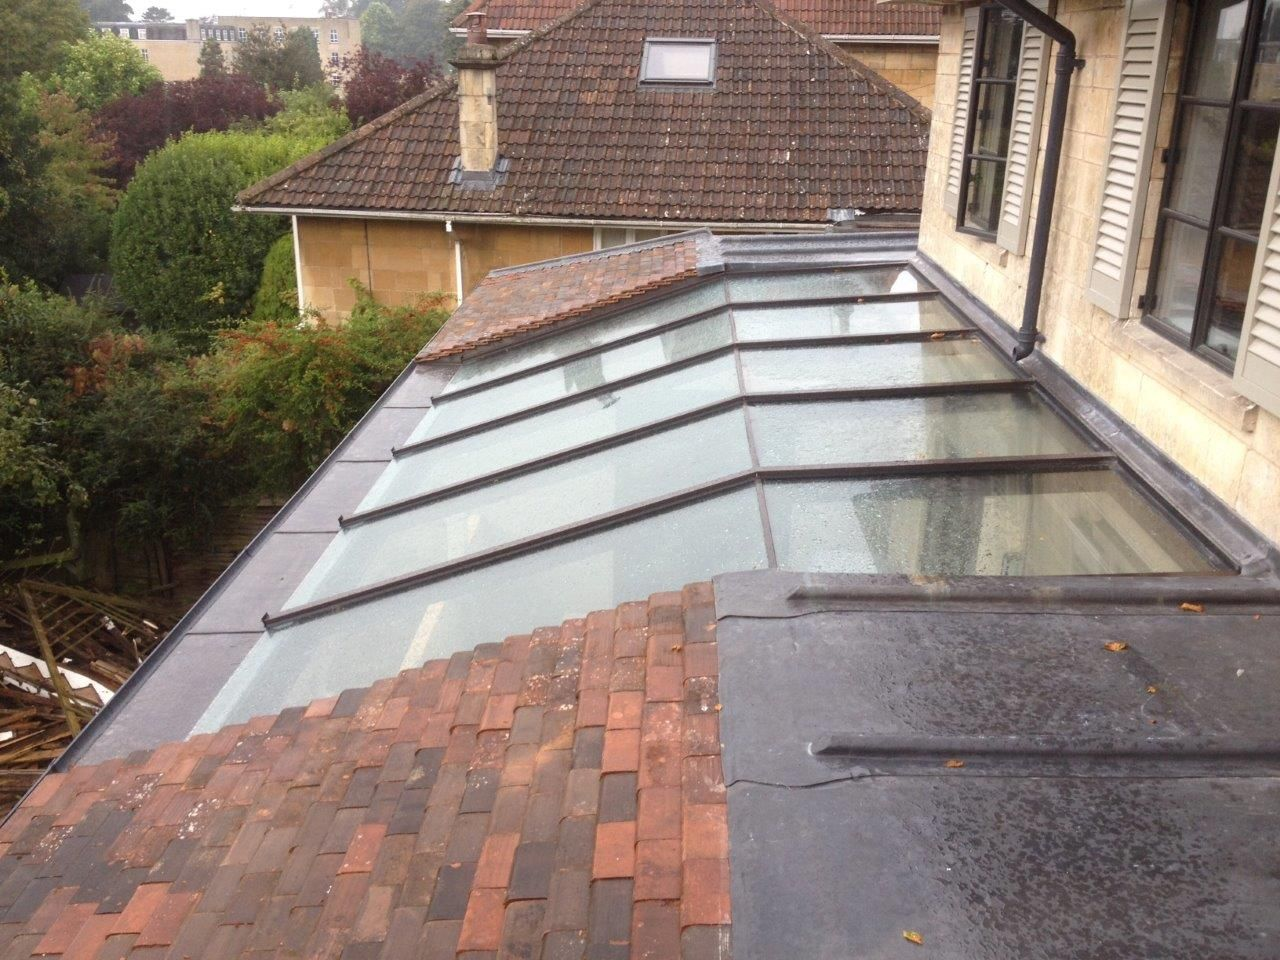 Pin on Mono and double pitched roofs